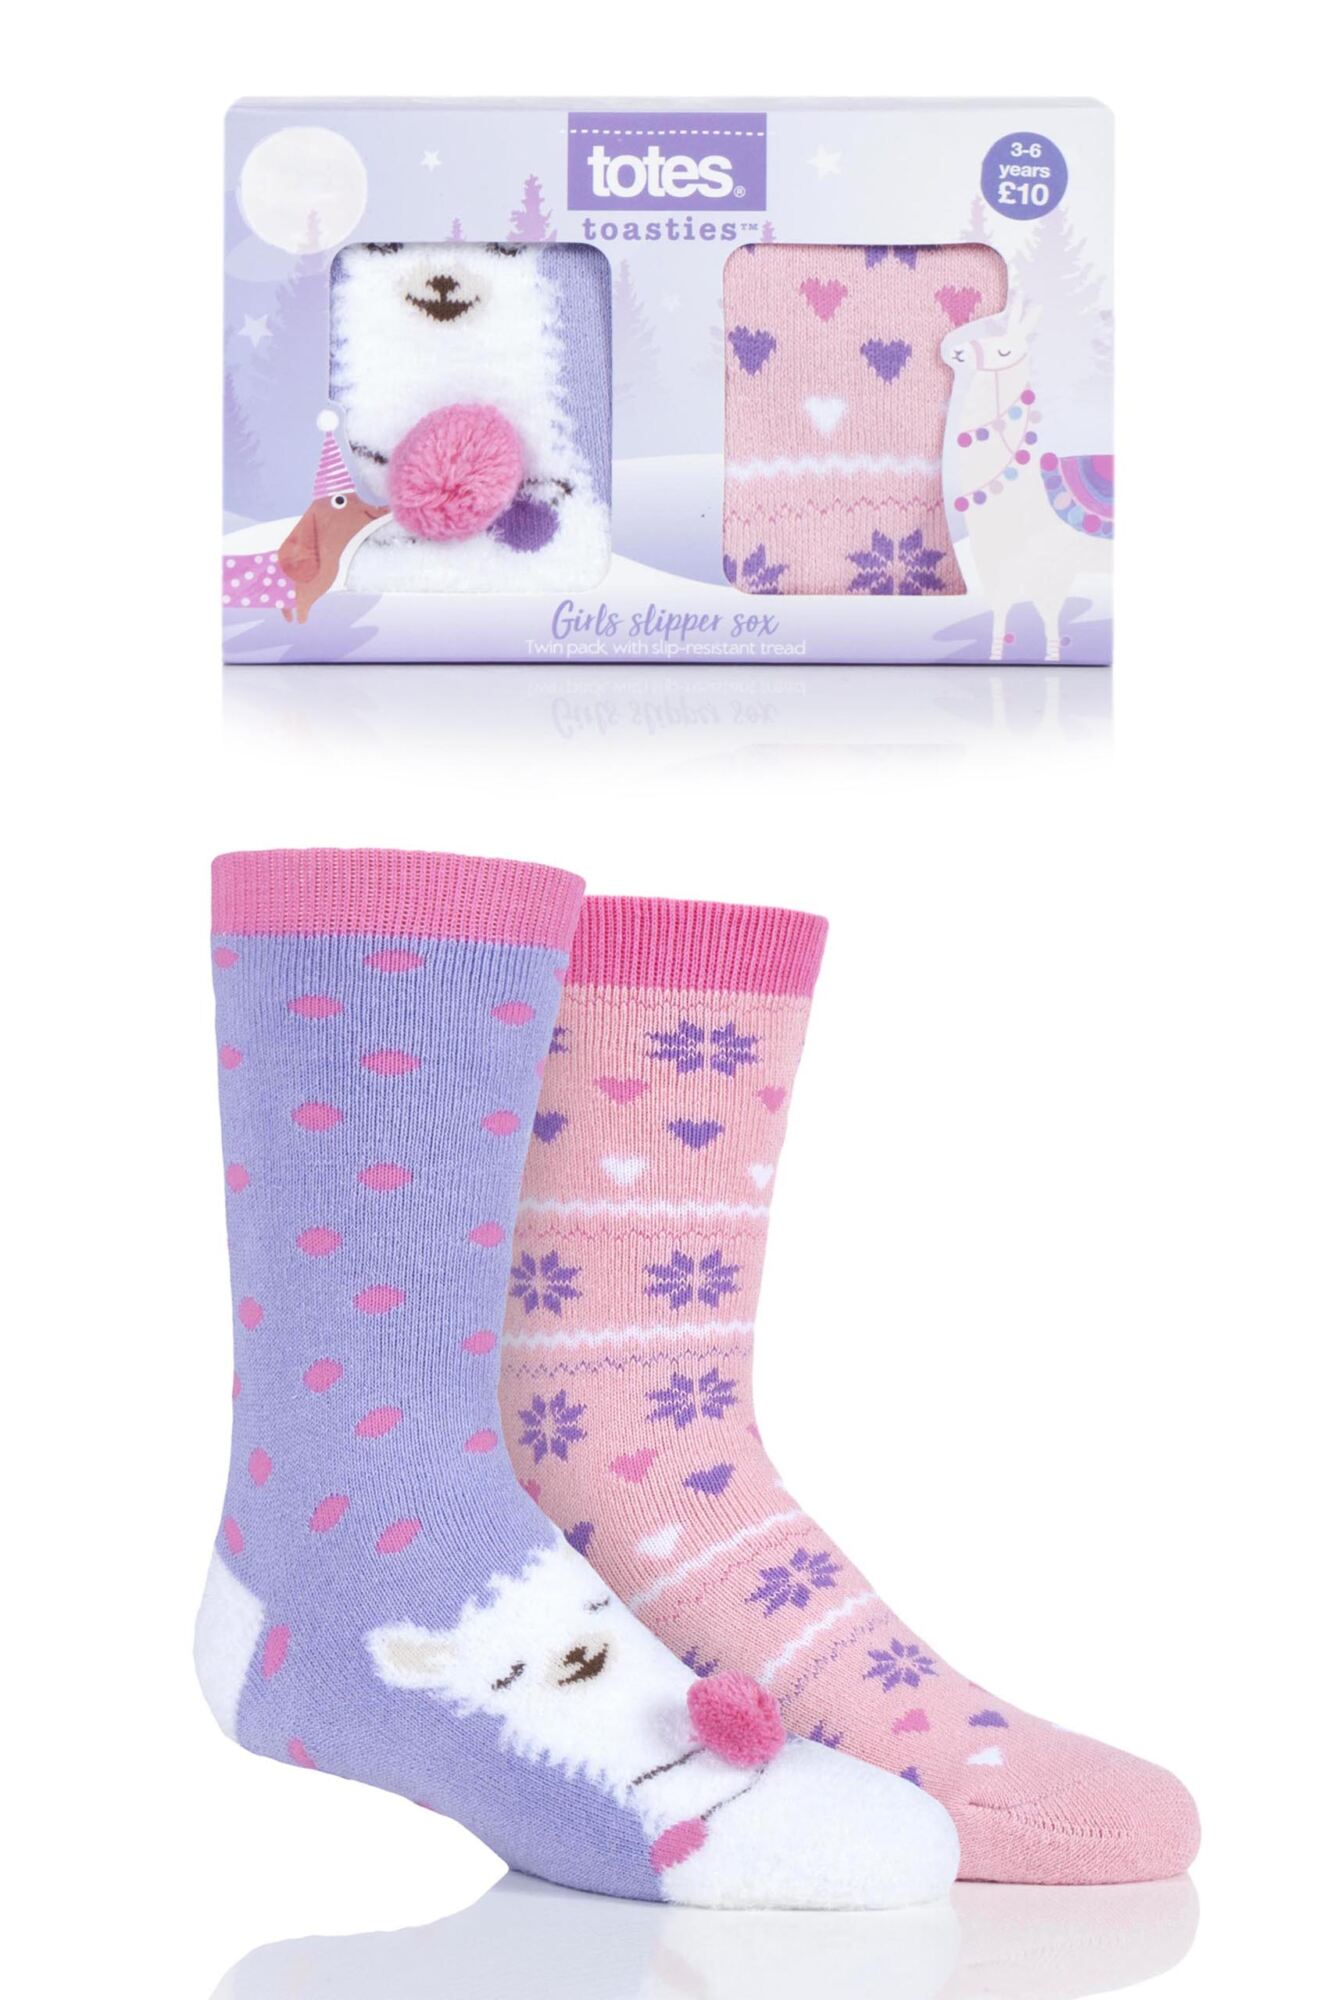 2 Pair Originals Novelty Slipper Socks Girls - Totes